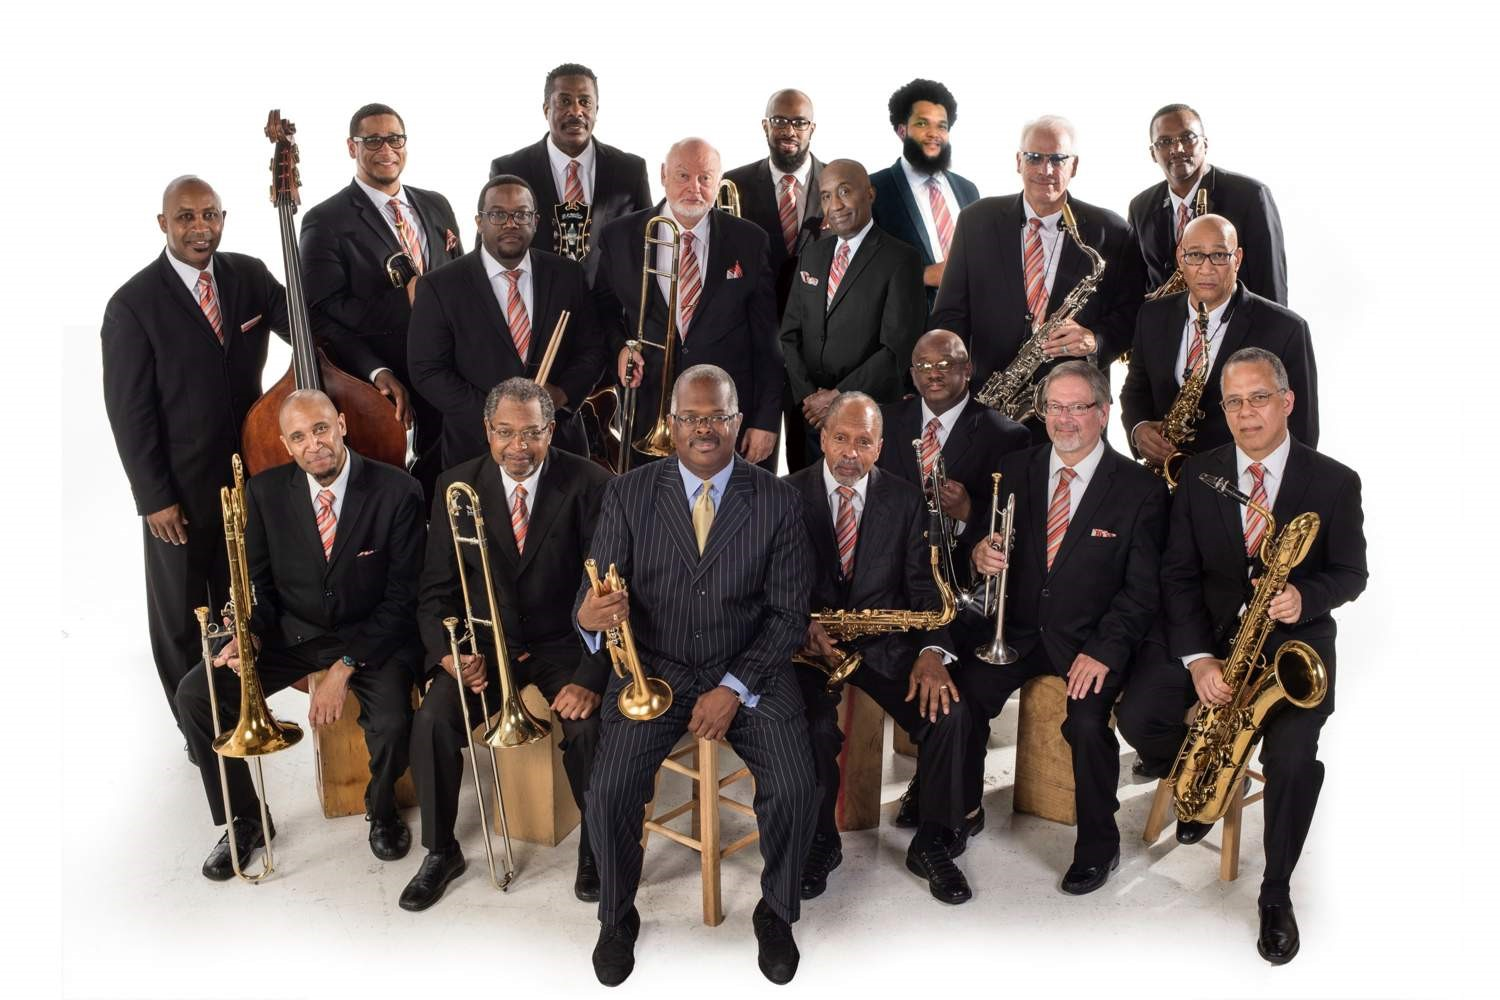 The Count Basie Orchestra memebers